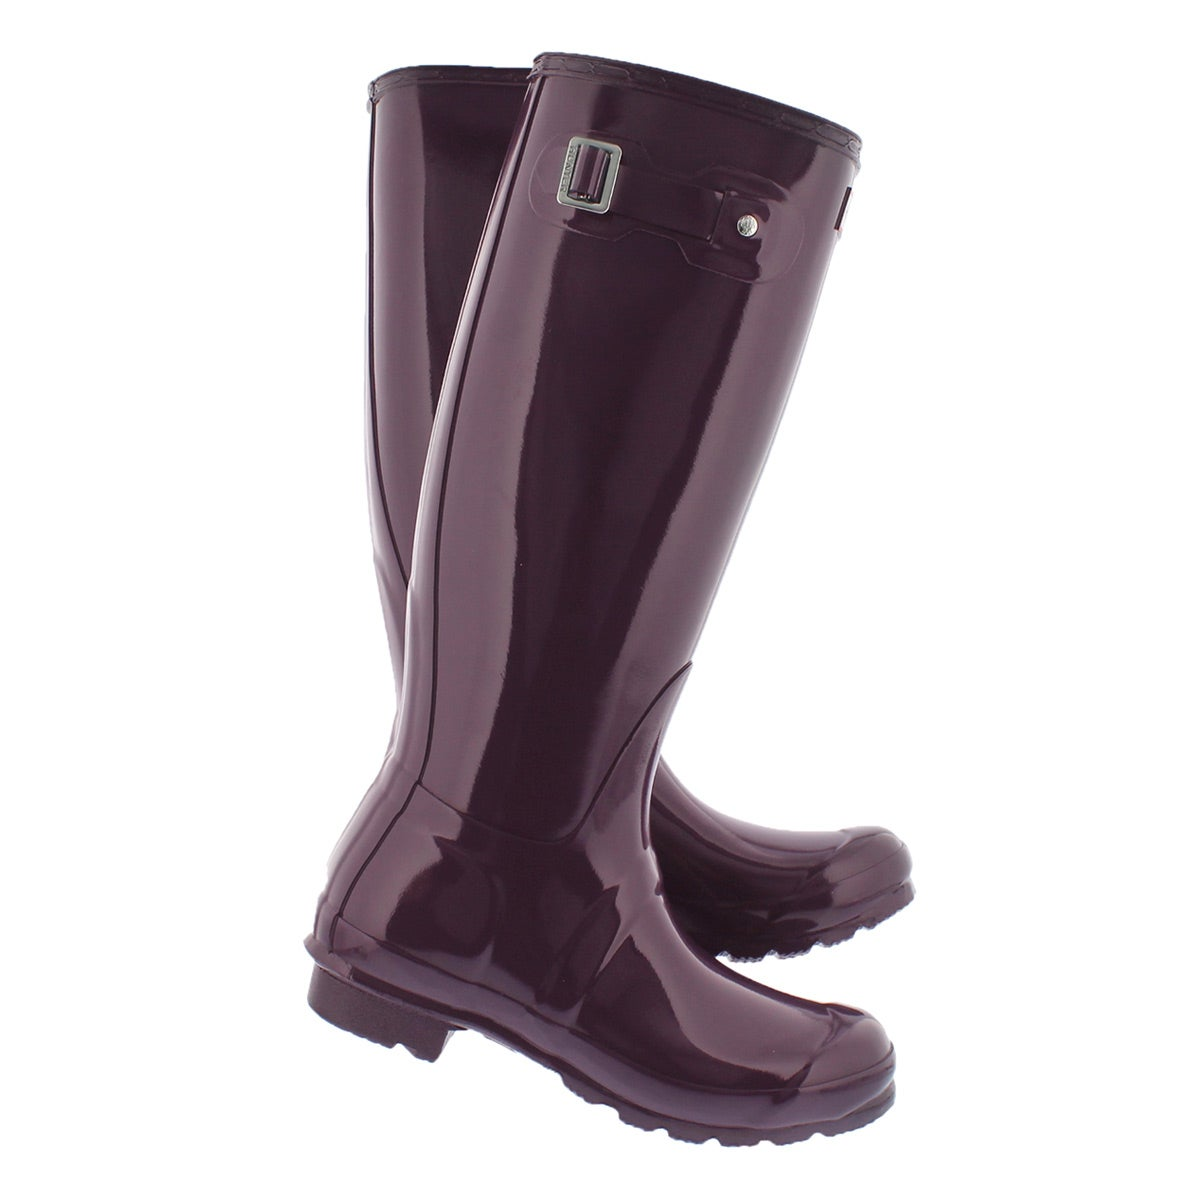 Hunter Women's ORIGINAL TALL GLOSS purple rain boots